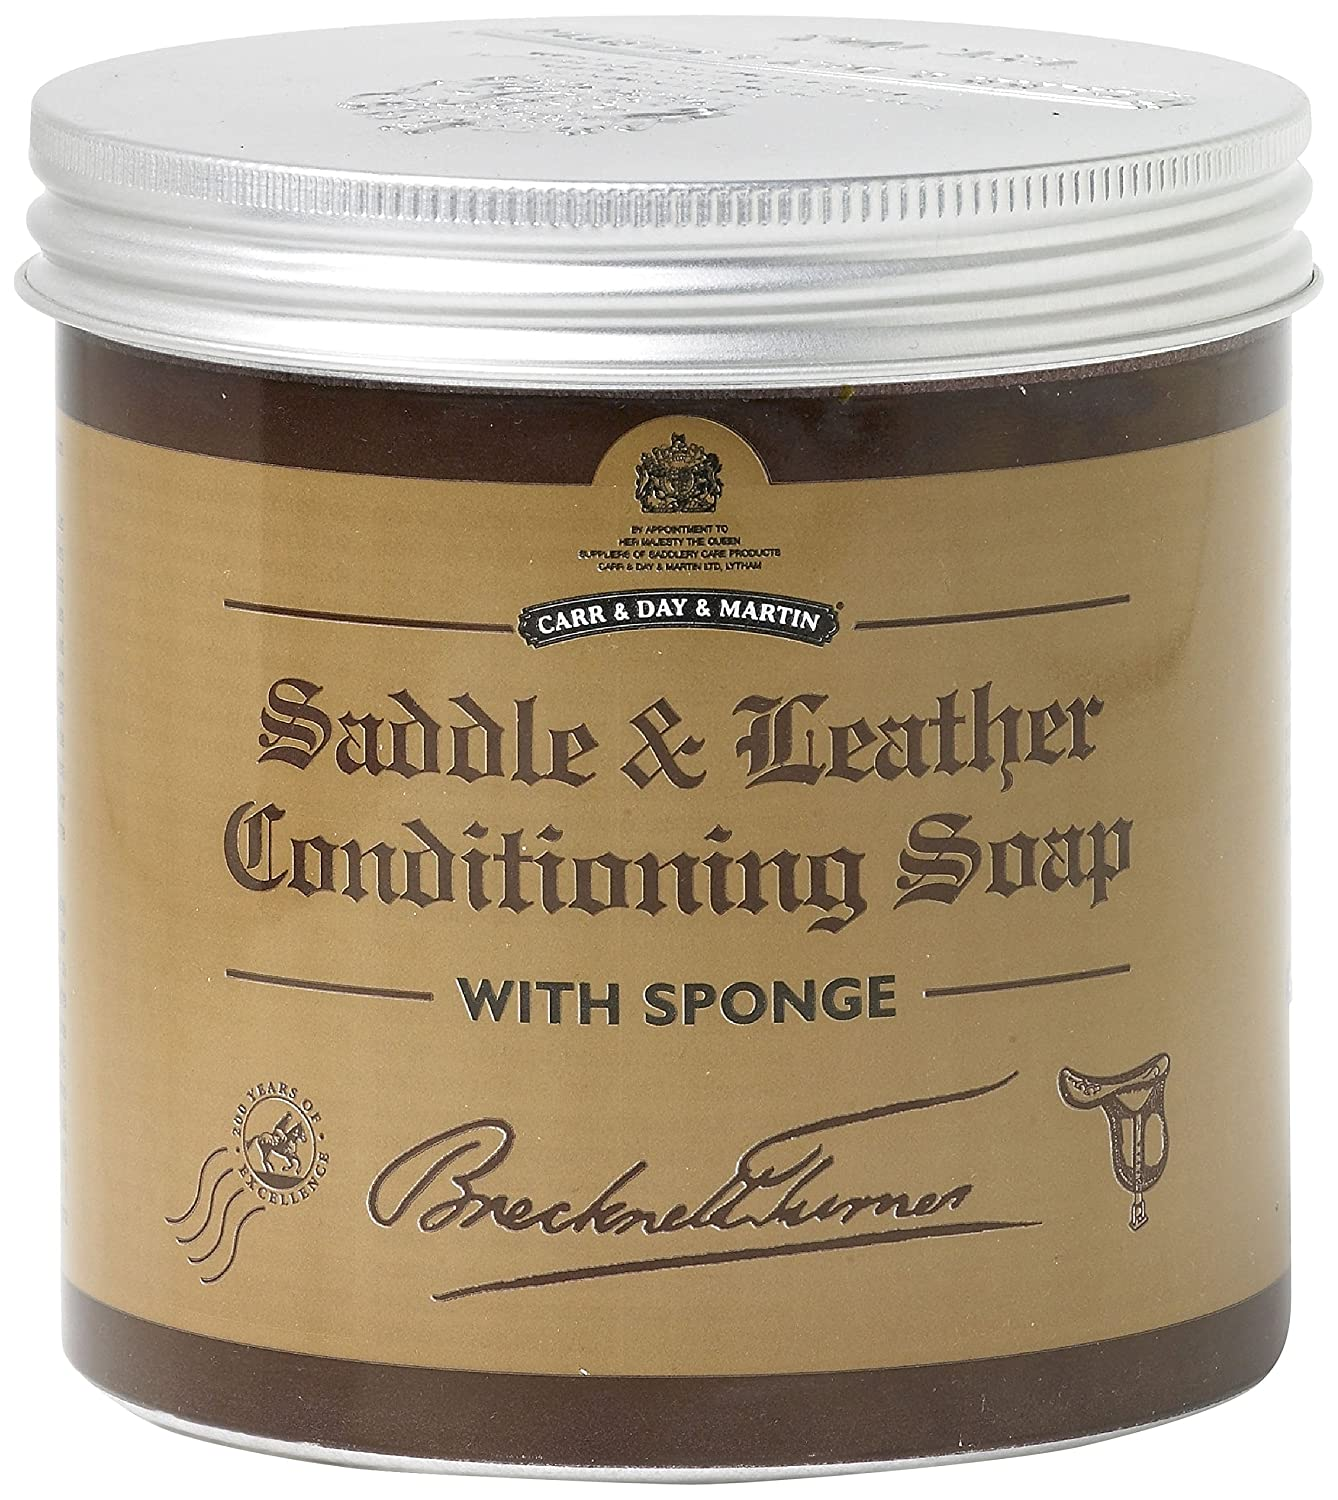 CARR & DAY & MARTIN Saddle and Leather Conditioning Soap 250 ml